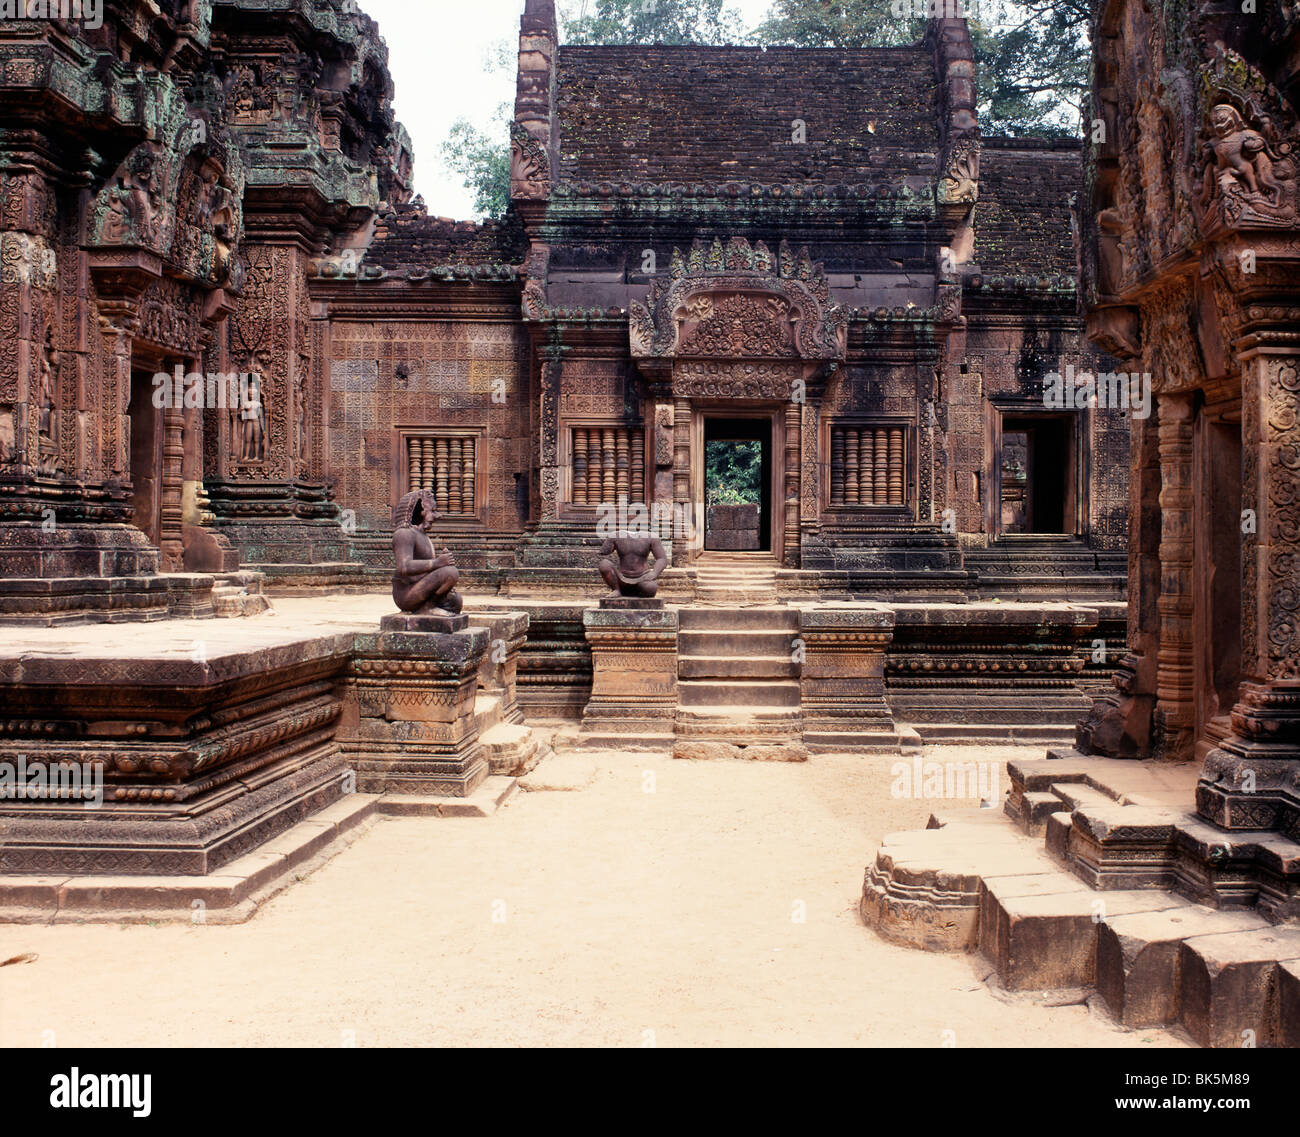 Banteay Srei, dating from the second half of the 10th century, Angkor, UNESCO World Heritage Site, Cambodia - Stock Image